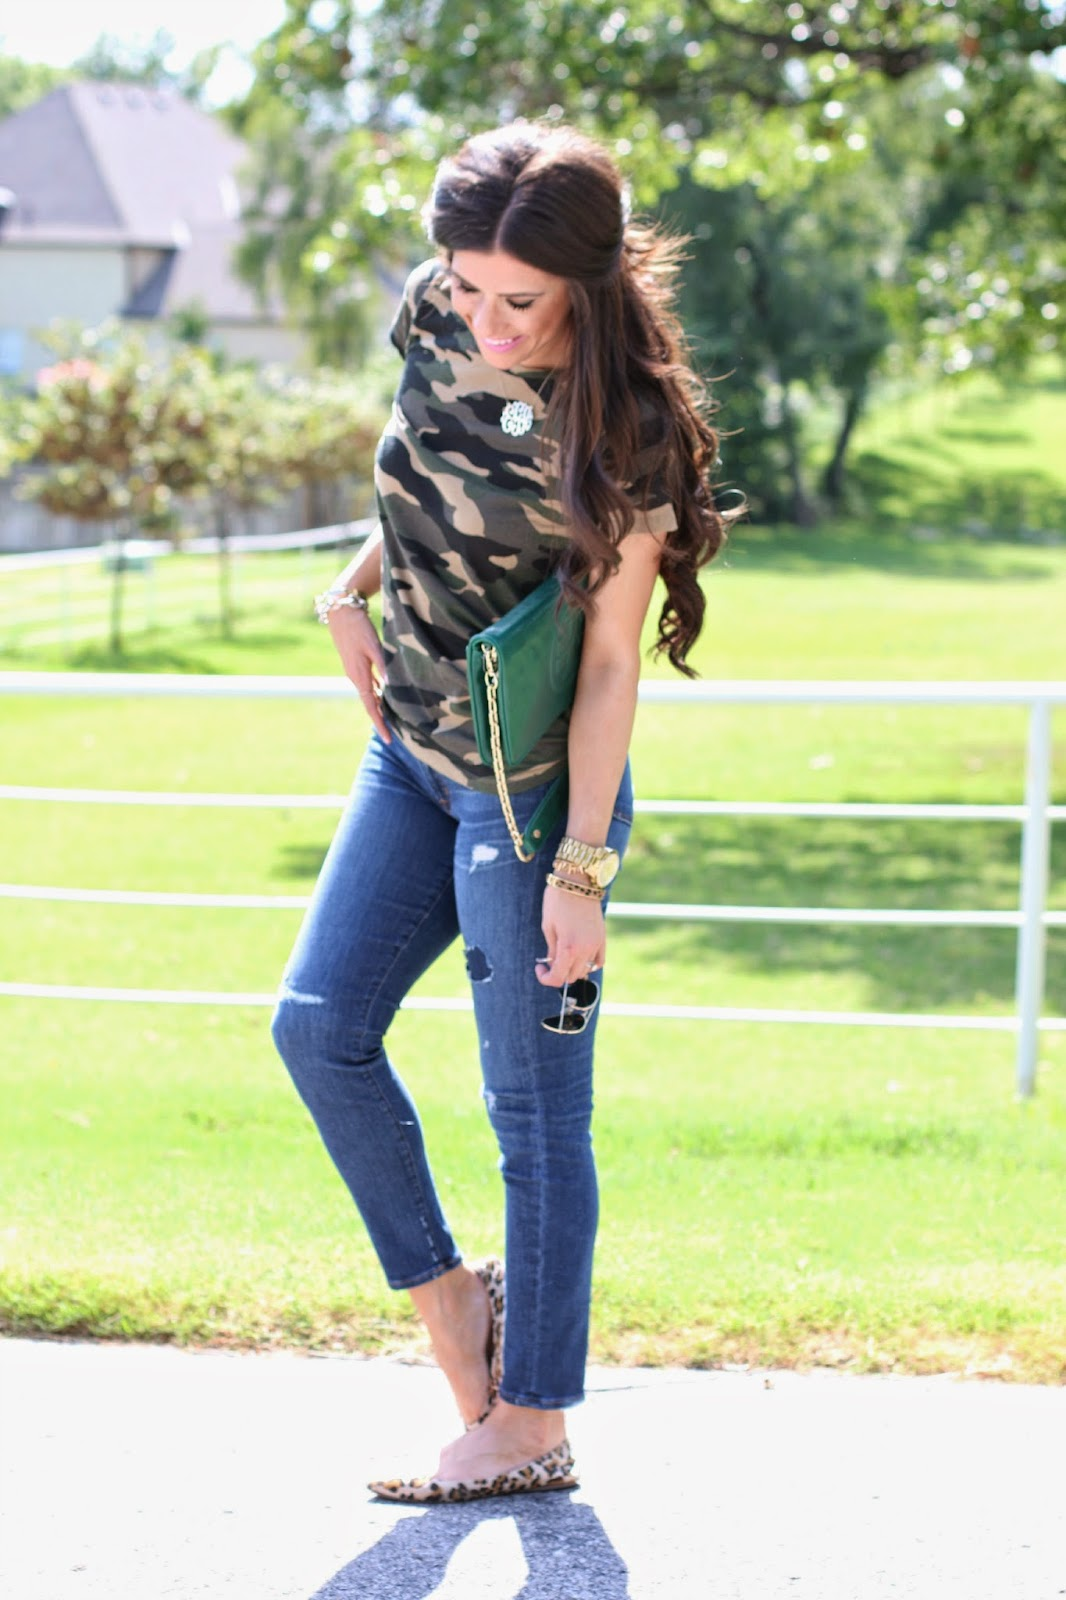 camo tee shirt, camo fashion, tory burch clutch, green tory burch clutch, ray ban aviators, emily gemma, emily gemma blog, the sweetest thing blog, crew jeans, gold monogram